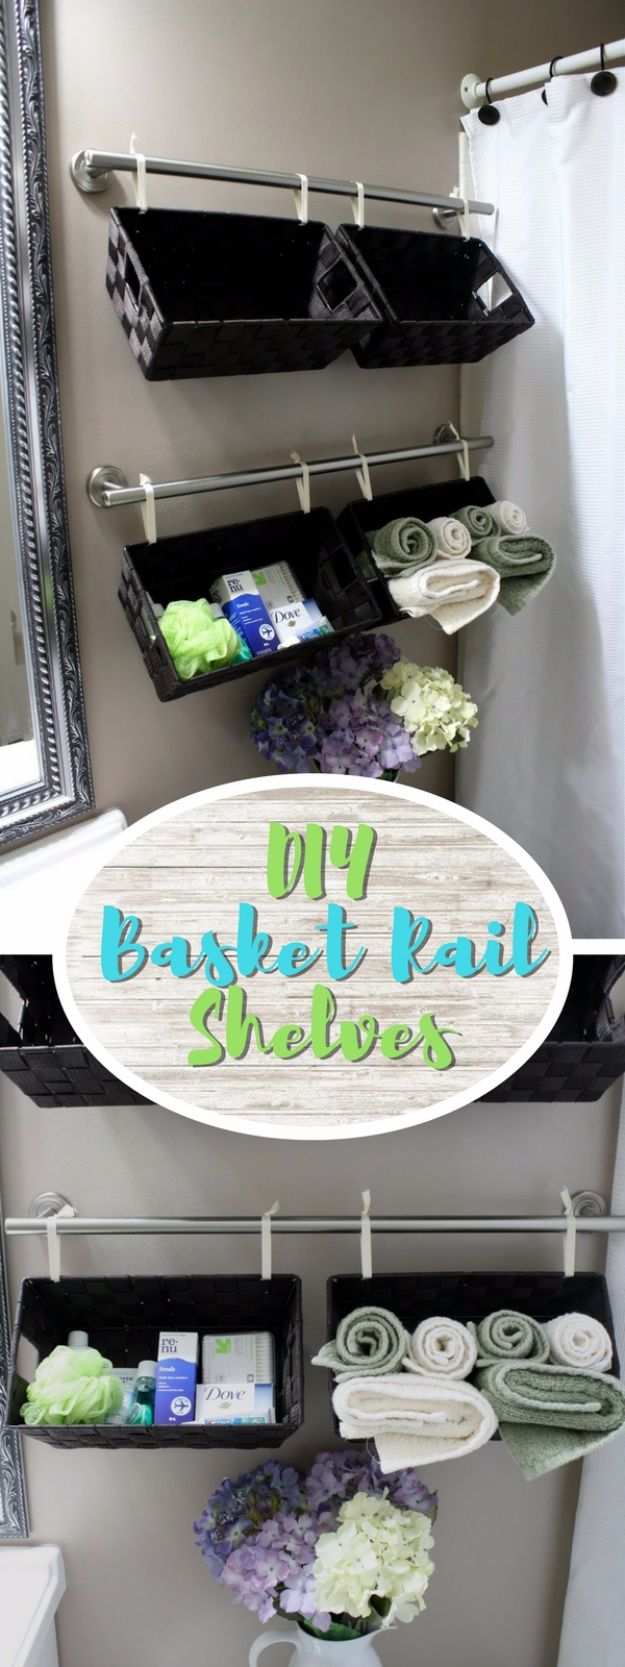 DIY Bathroom Storage Ideas - Basket Rail Shelves - Best Solutions for Under Sink Organization, Countertop Jars and Boxes, Counter Caddy With Mason Jars, Over Toilet Ideas and Shelves, Easy Tips and Tricks for Small Spaces To Organize Bath Products http://diyjoy.com/diy-bathroom-storage-ideas